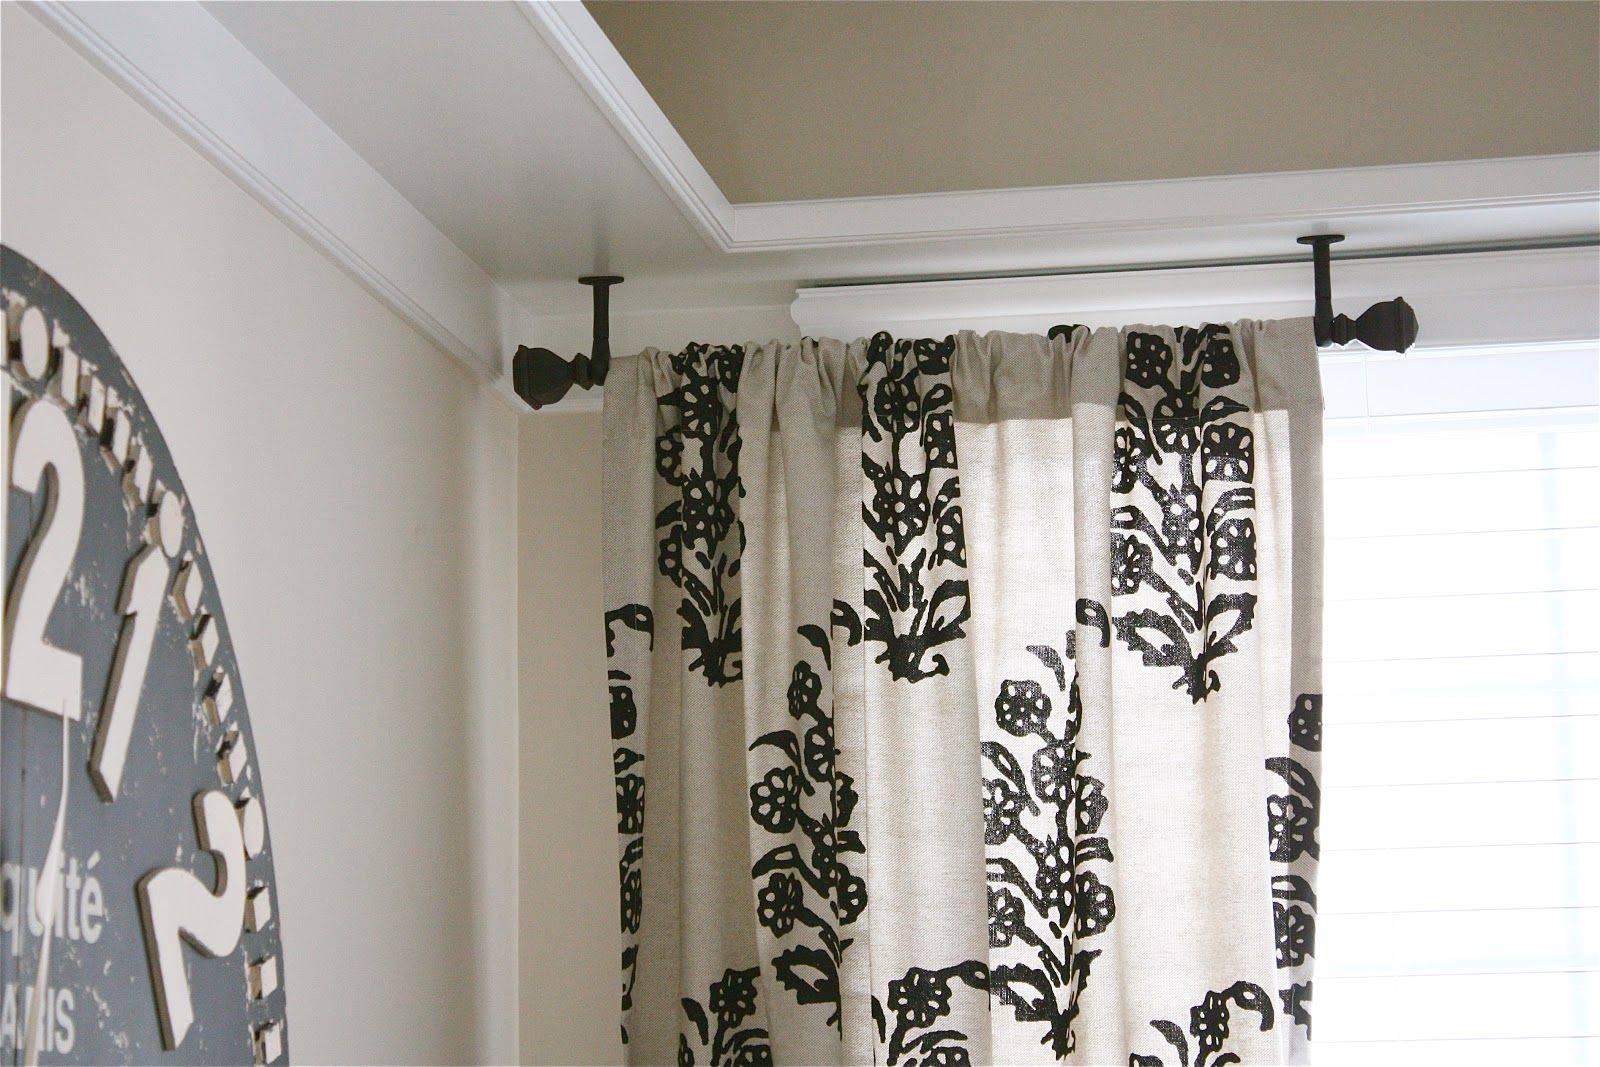 Ceiling Mount Drapery Trick Ceiling Mount Curtain Rods Ceiling